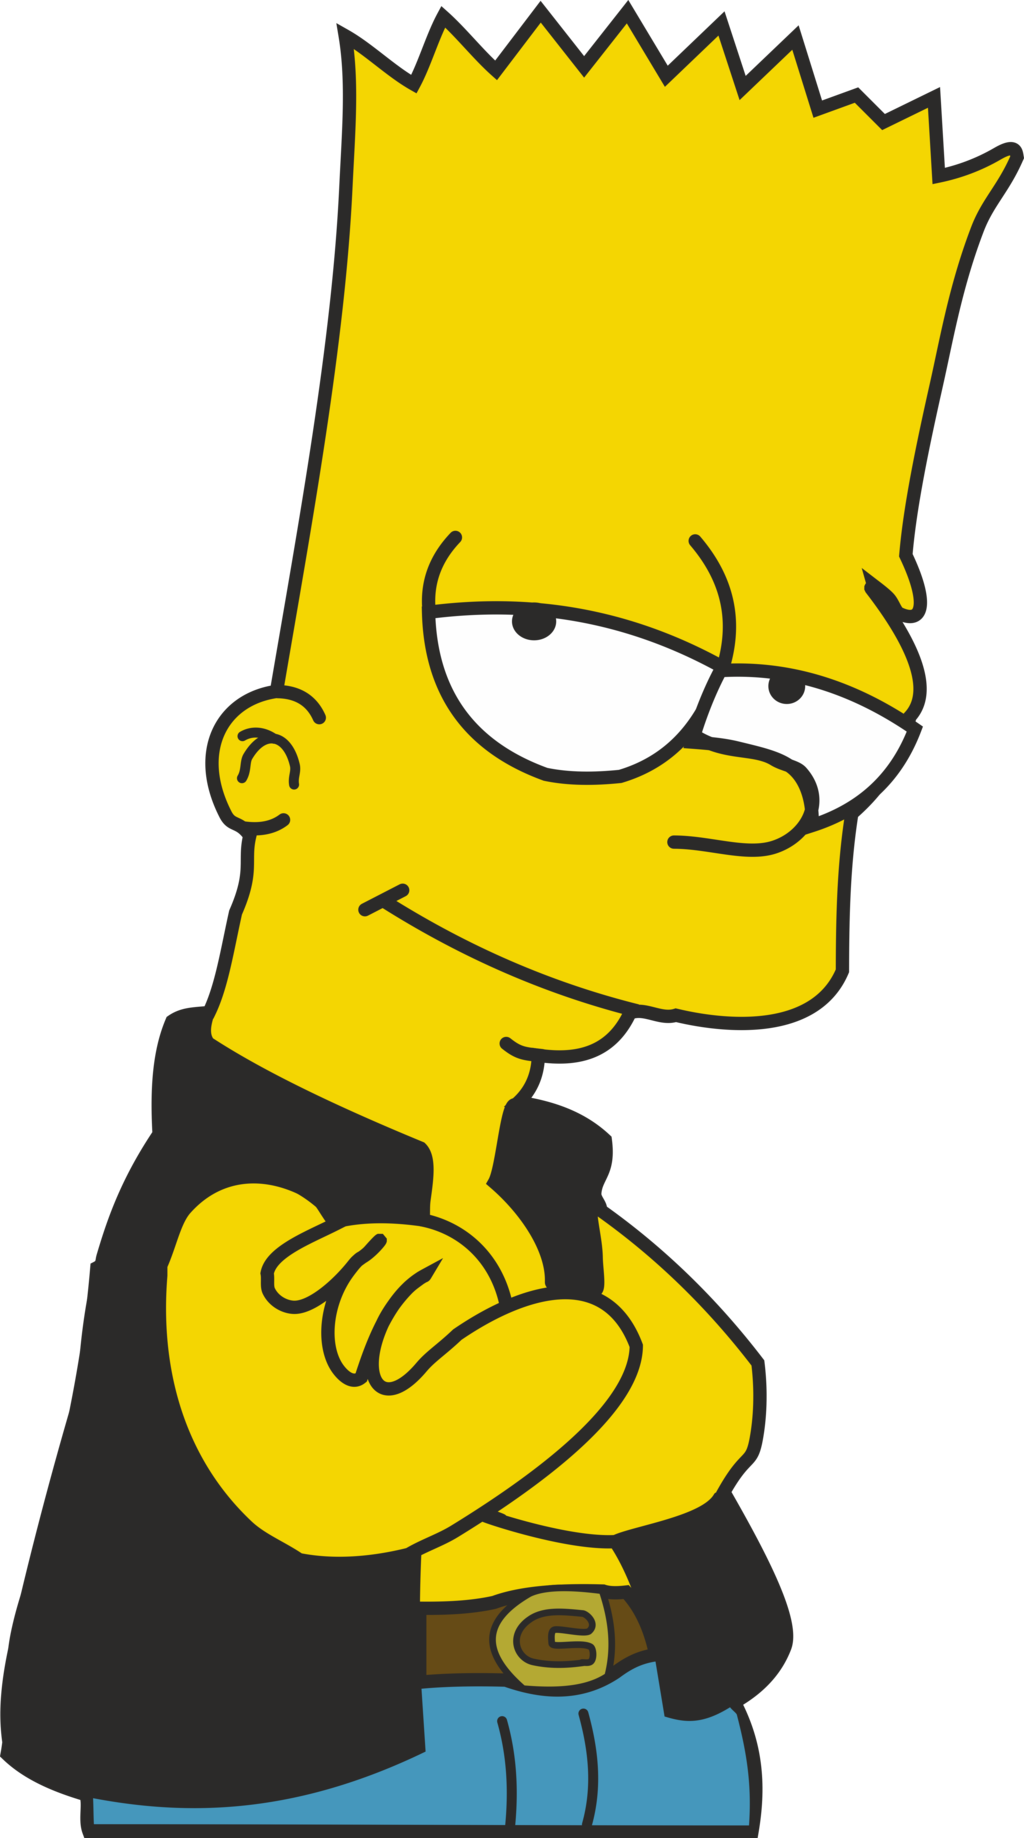 Bart Simpson Png image #39257